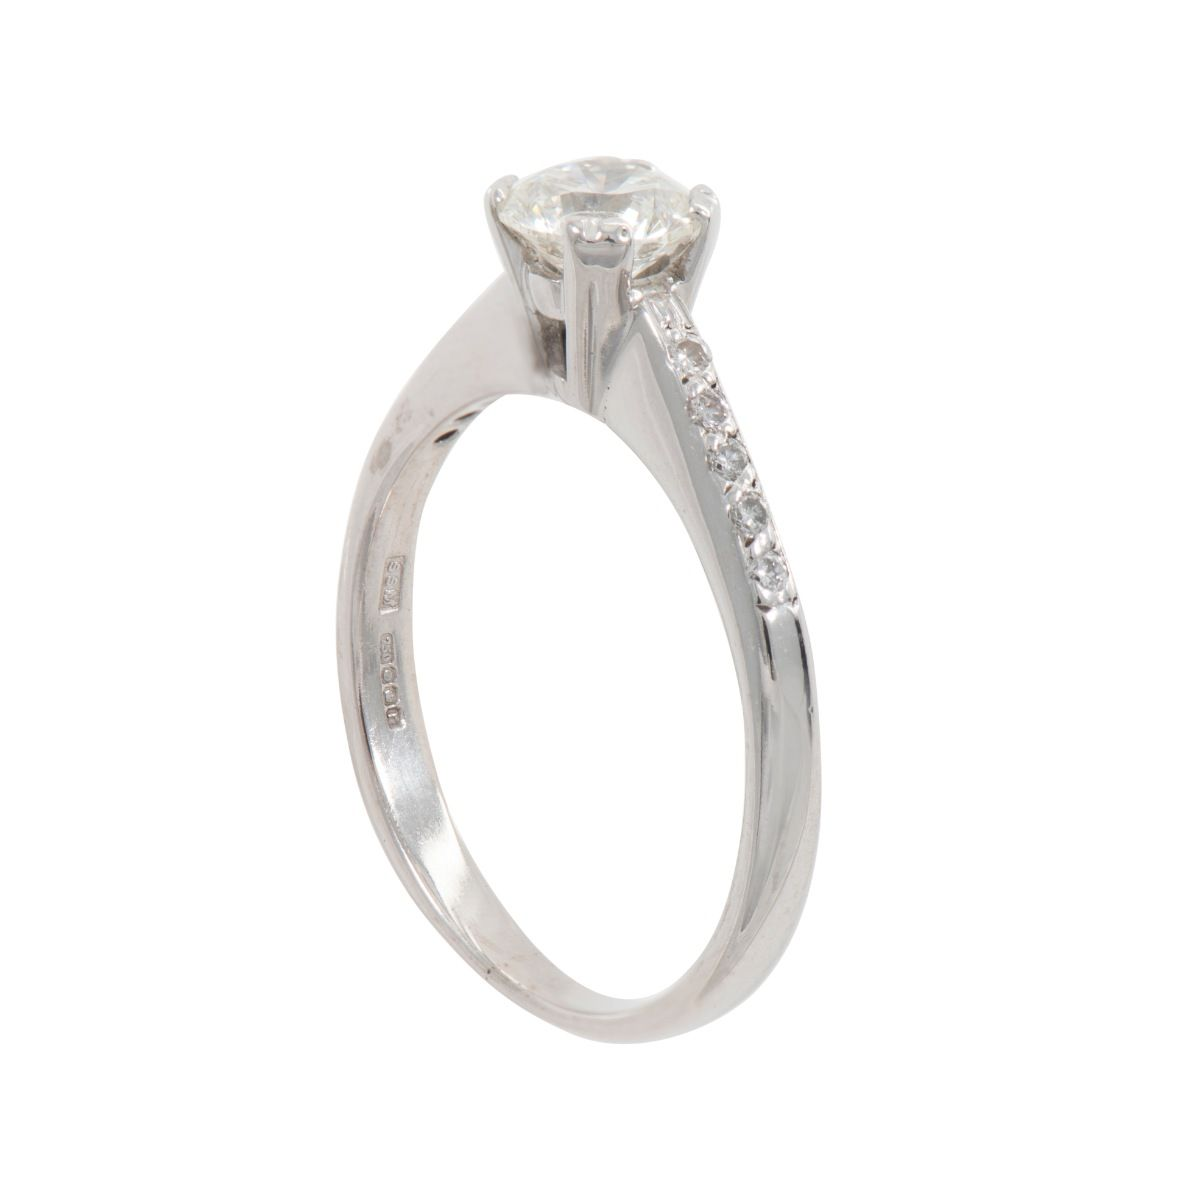 18ct White Gold Ladies Round 0.84ct Diamond Accent Solitaire Ring Size P